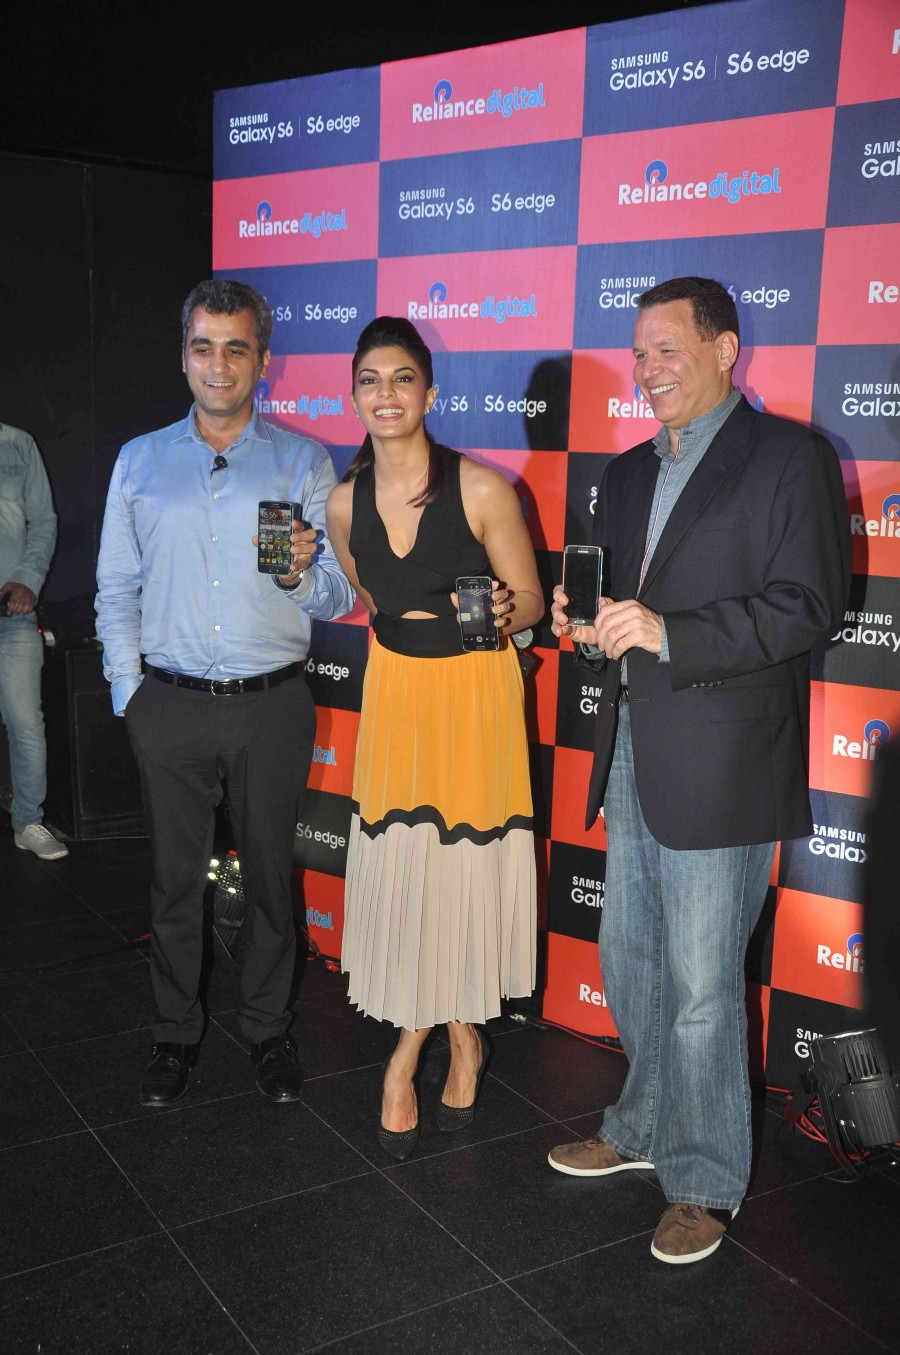 Jacqueline Fernandez,Jacqueline Fernandez launch event,Samsung Galaxy S6,Samsung Galaxy S6 Edge,samsung launch event photos